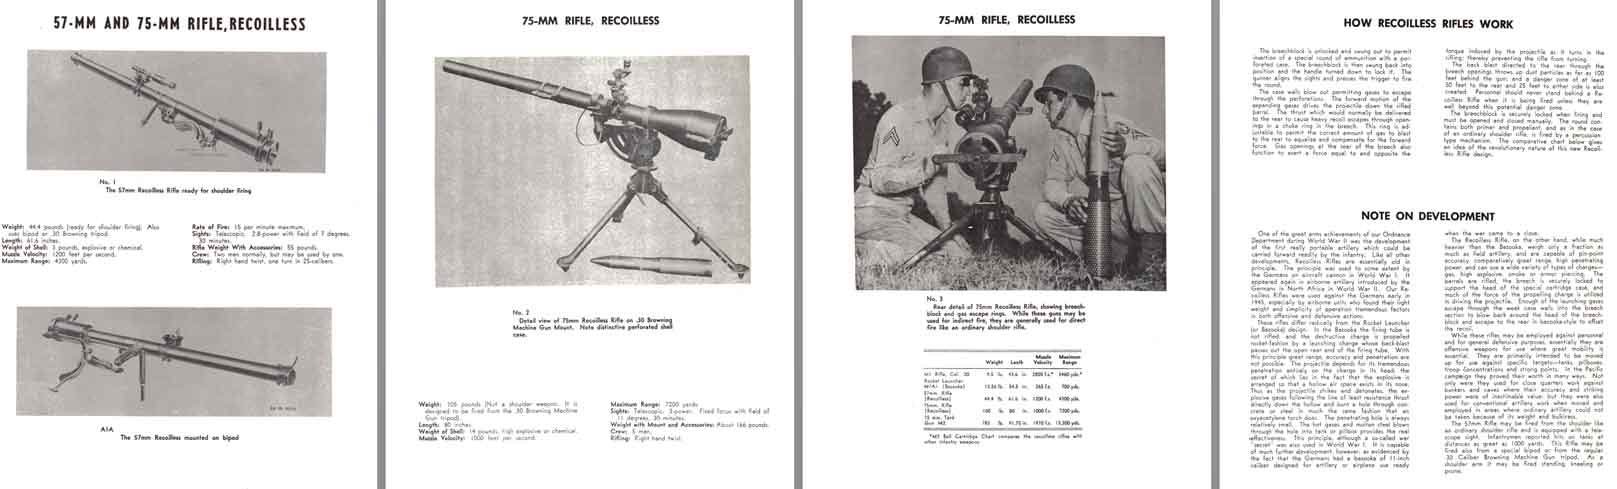 Recoiless Rifle c1945 57mm & 75mm- U.S.